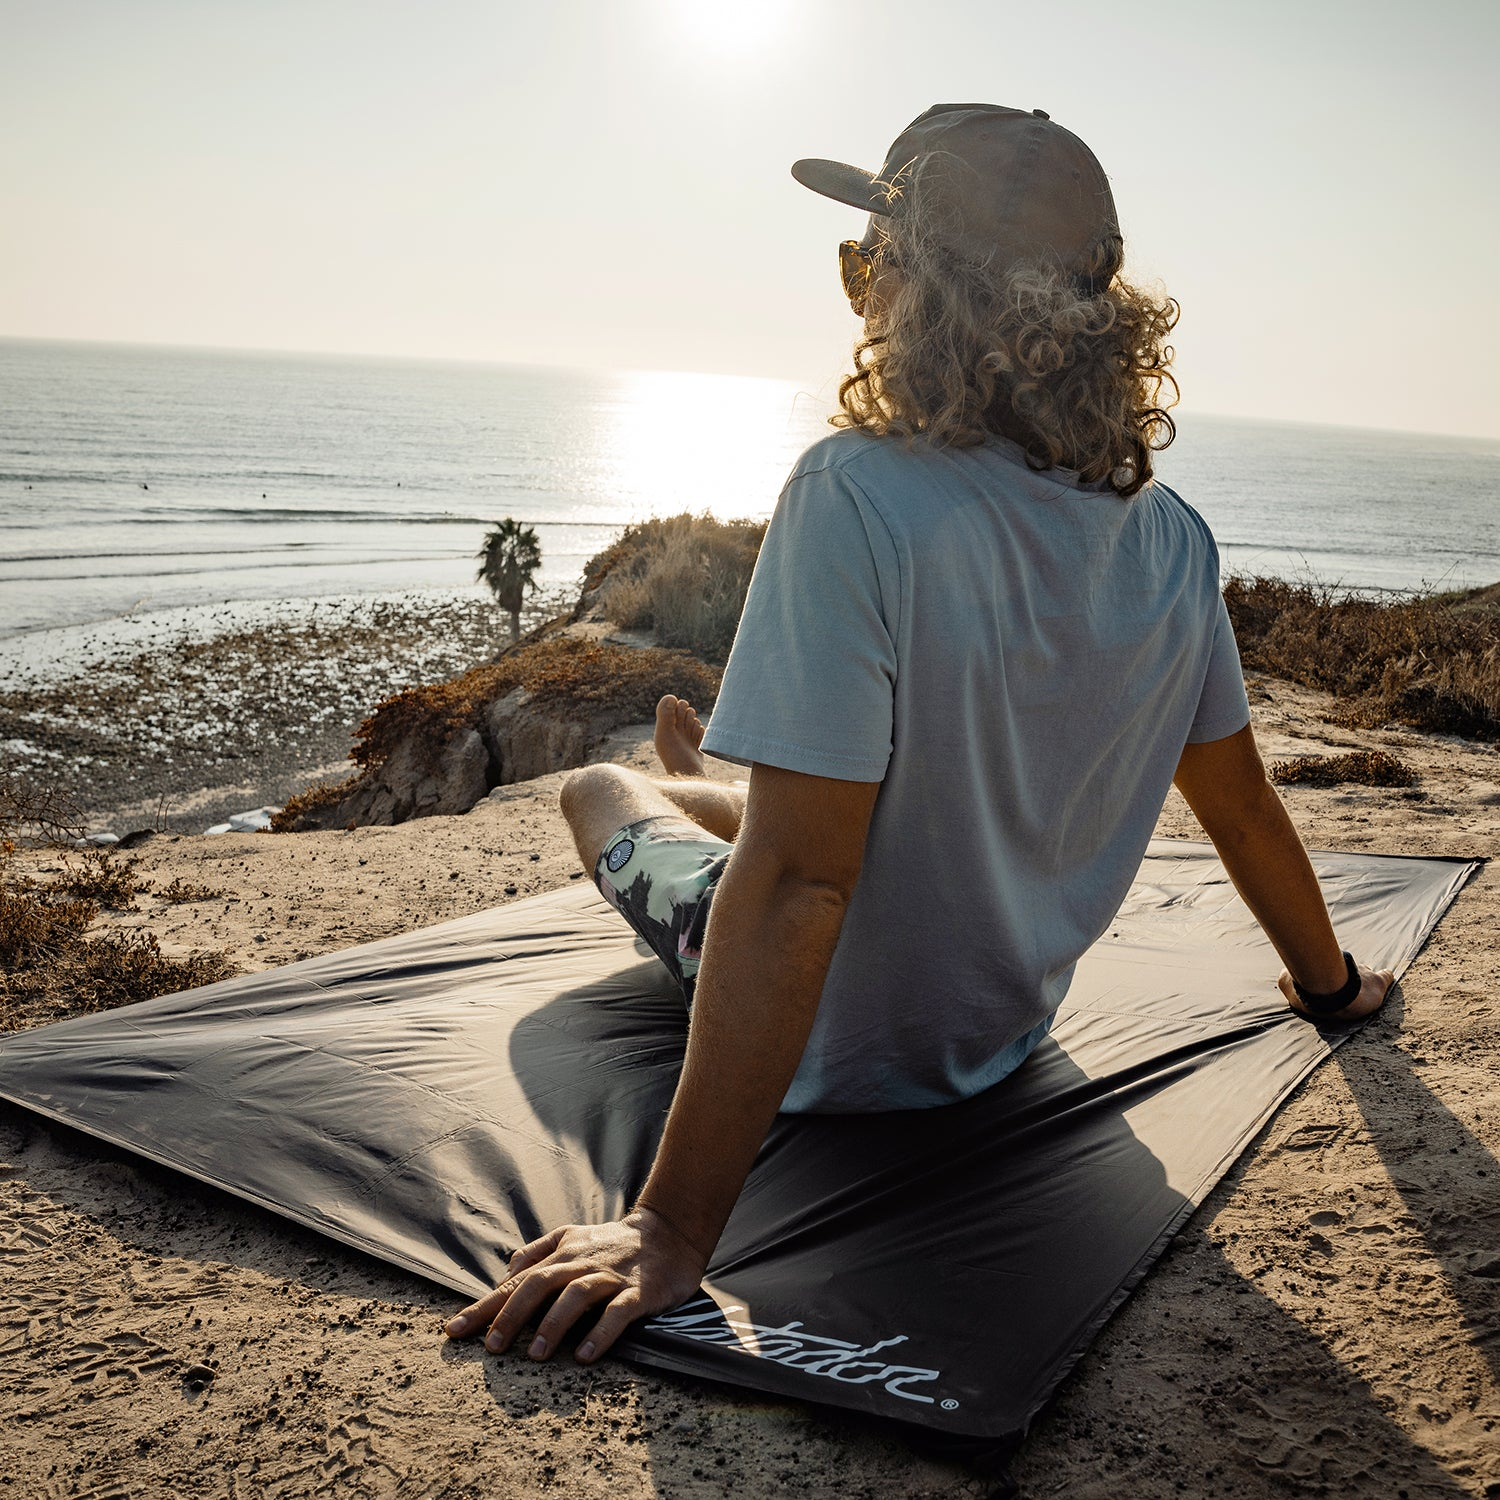 Man looking out to ocean sunset, sitting on a pocket blanket